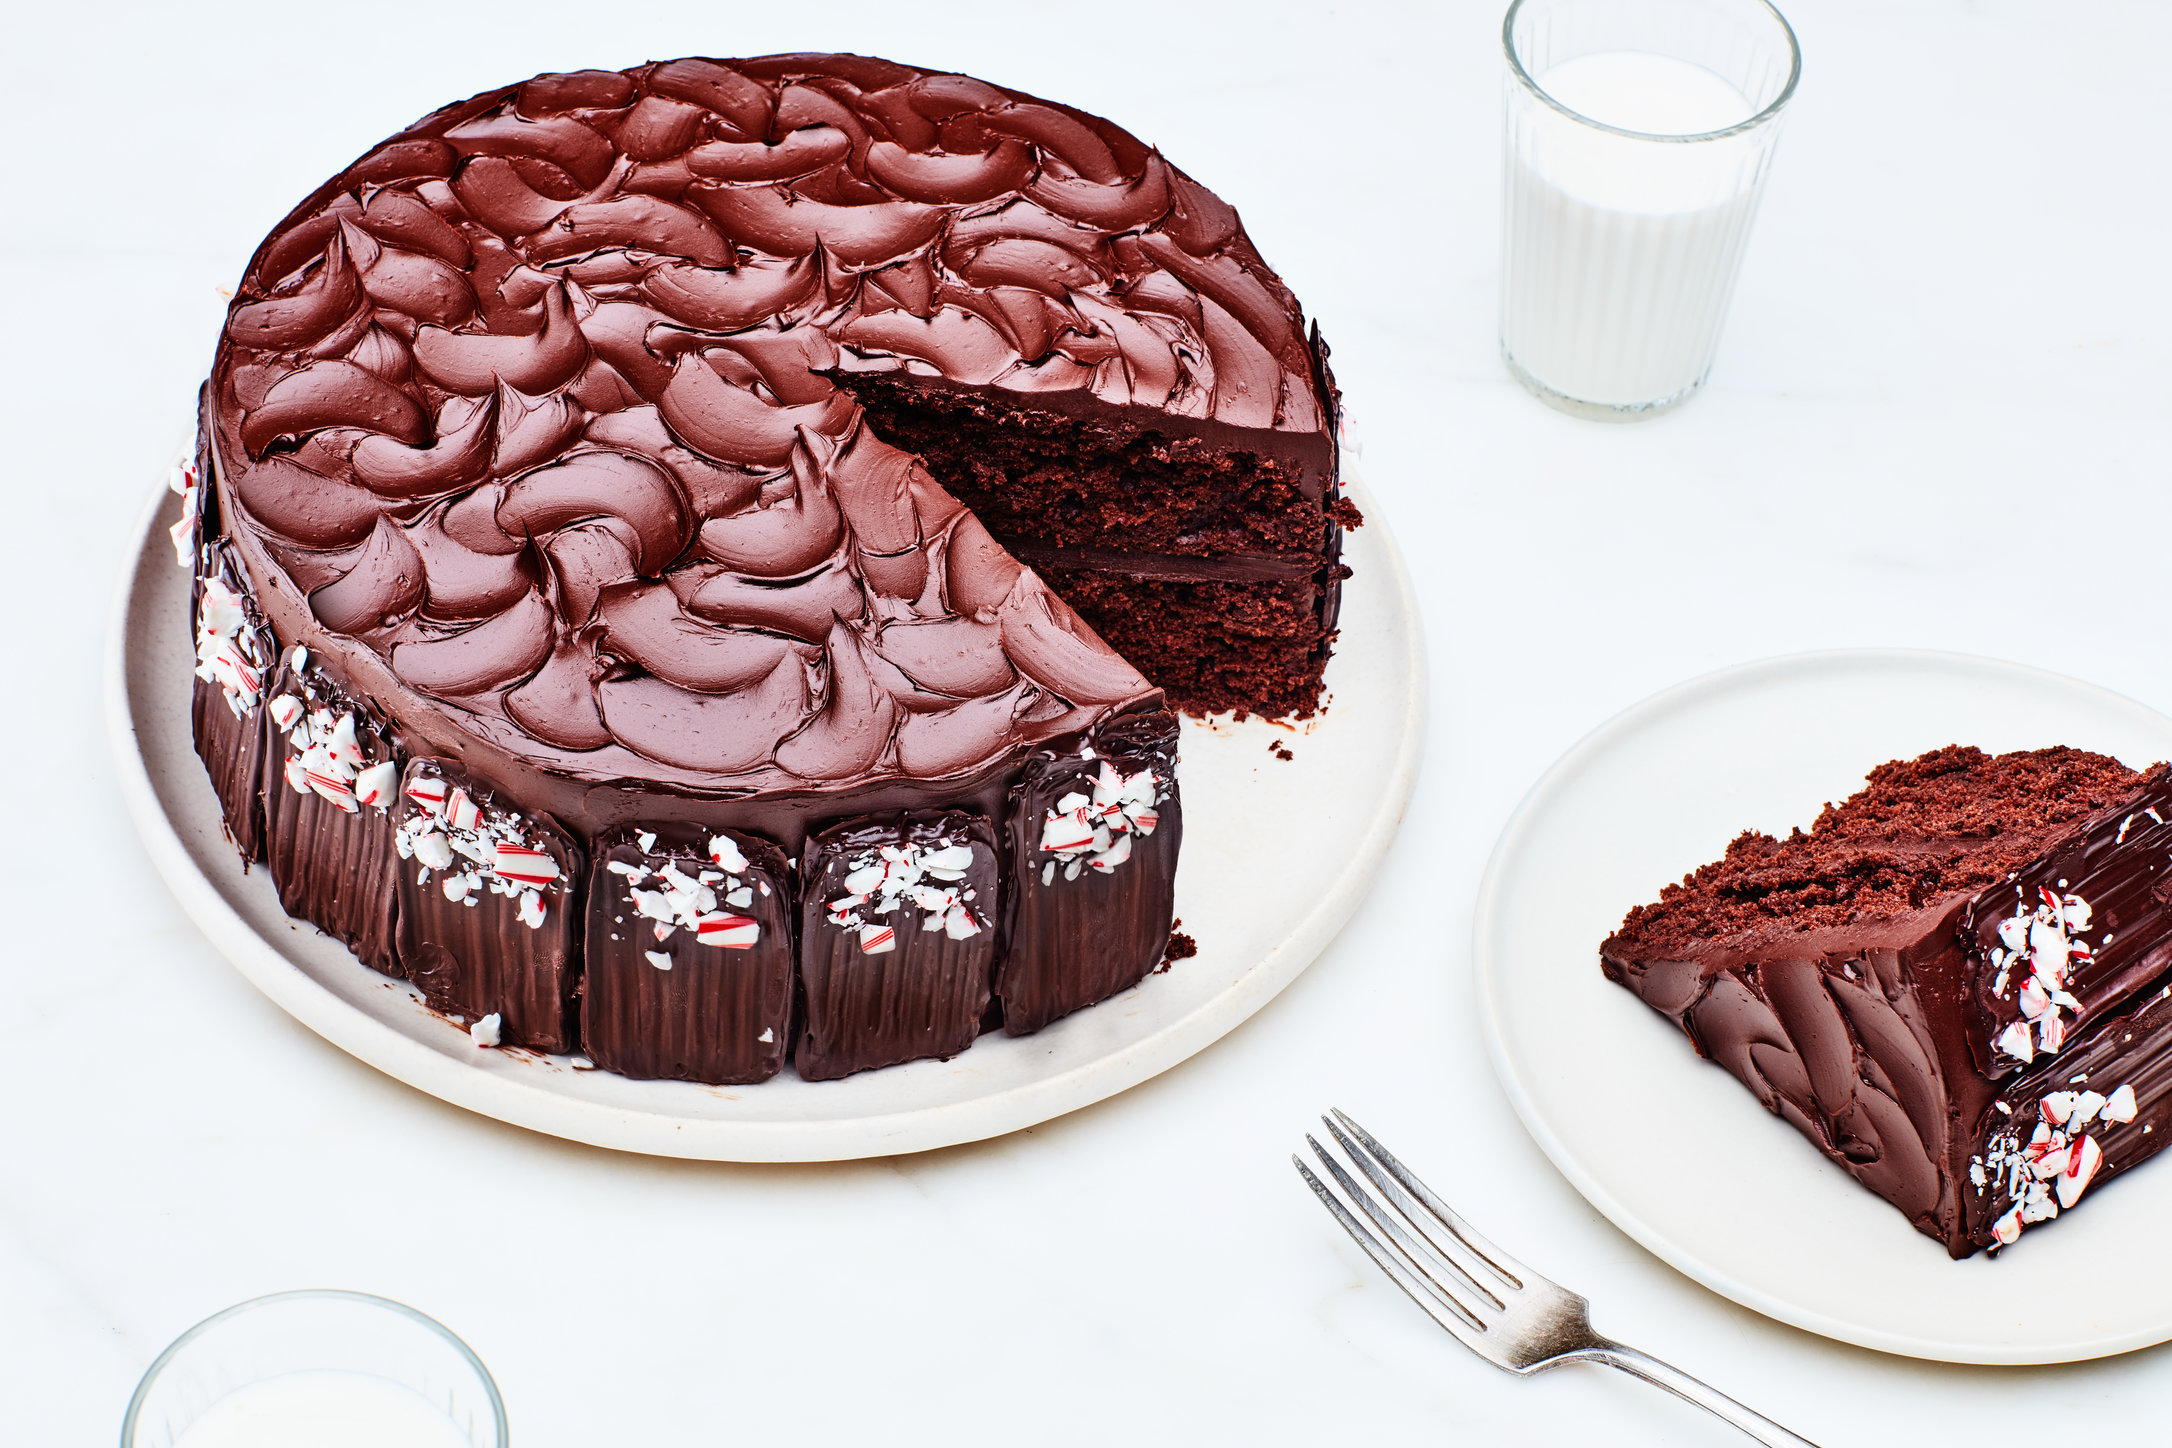 google-express-Peppermint-Chocolate-Cake-110317.jpg